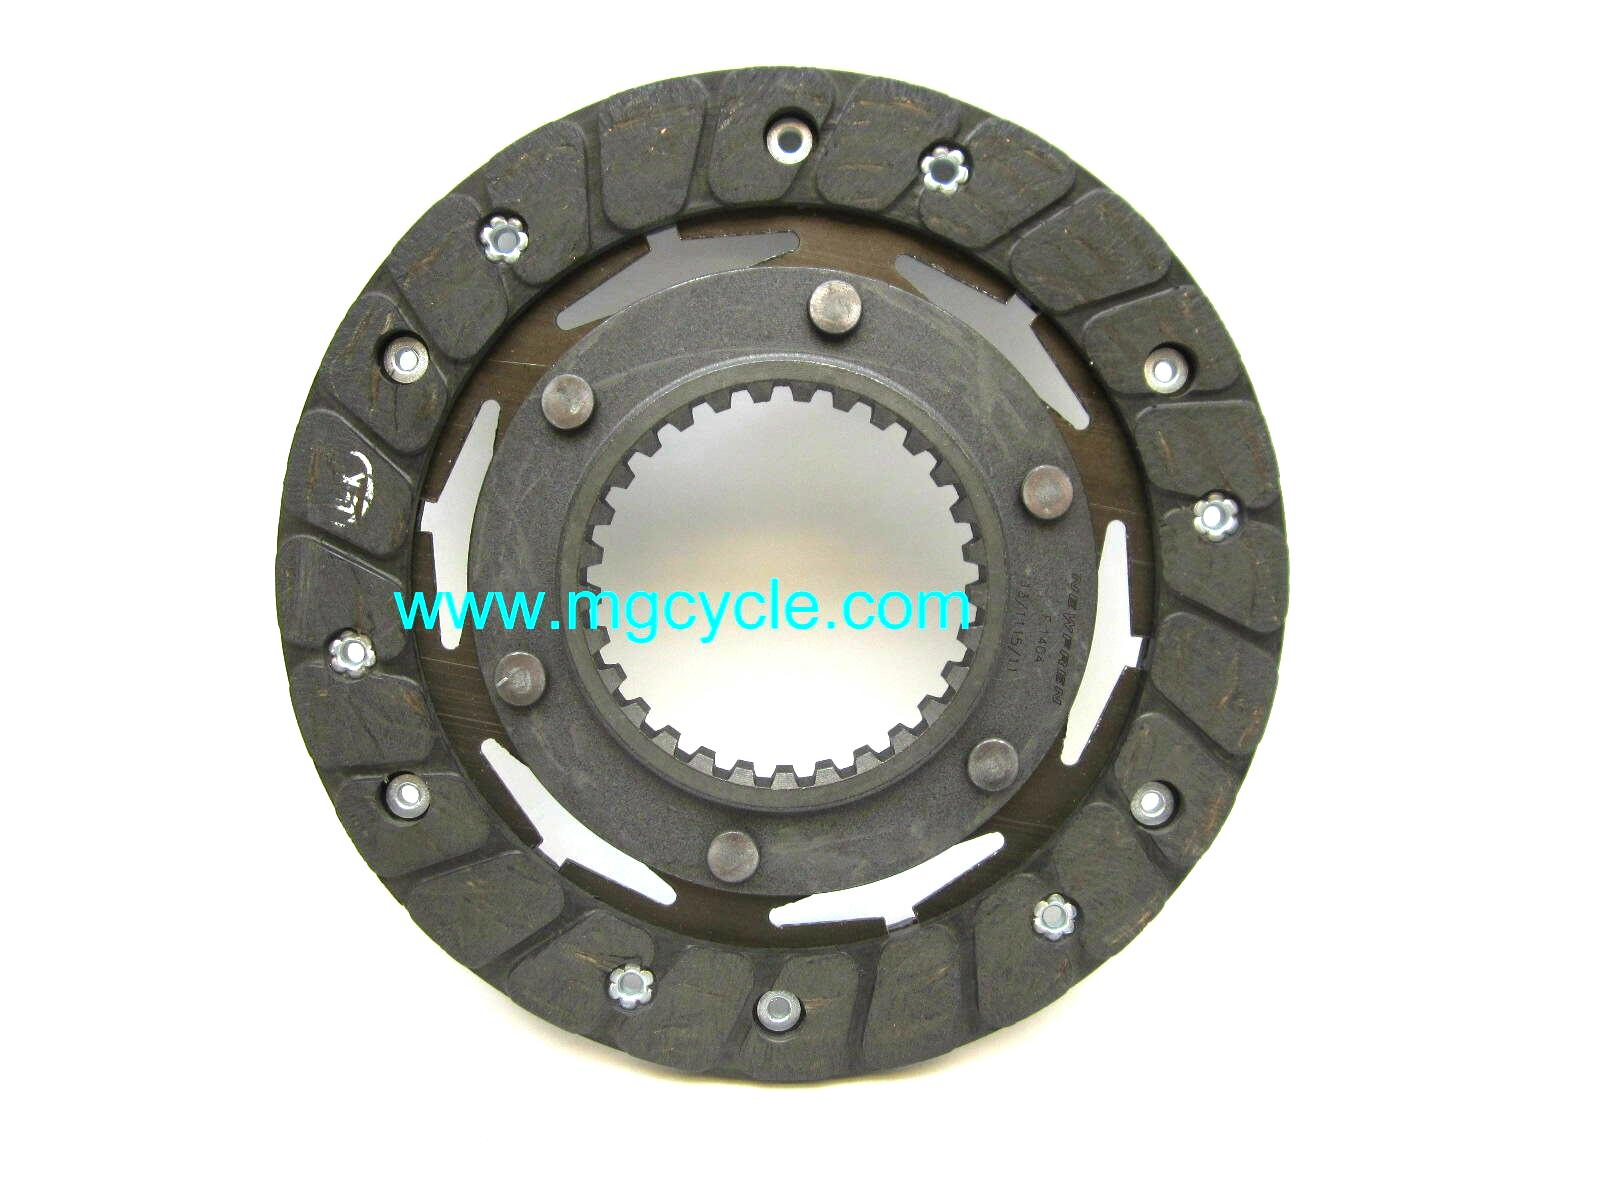 Newfren clutch friction plate for early shallow spline GU2808446